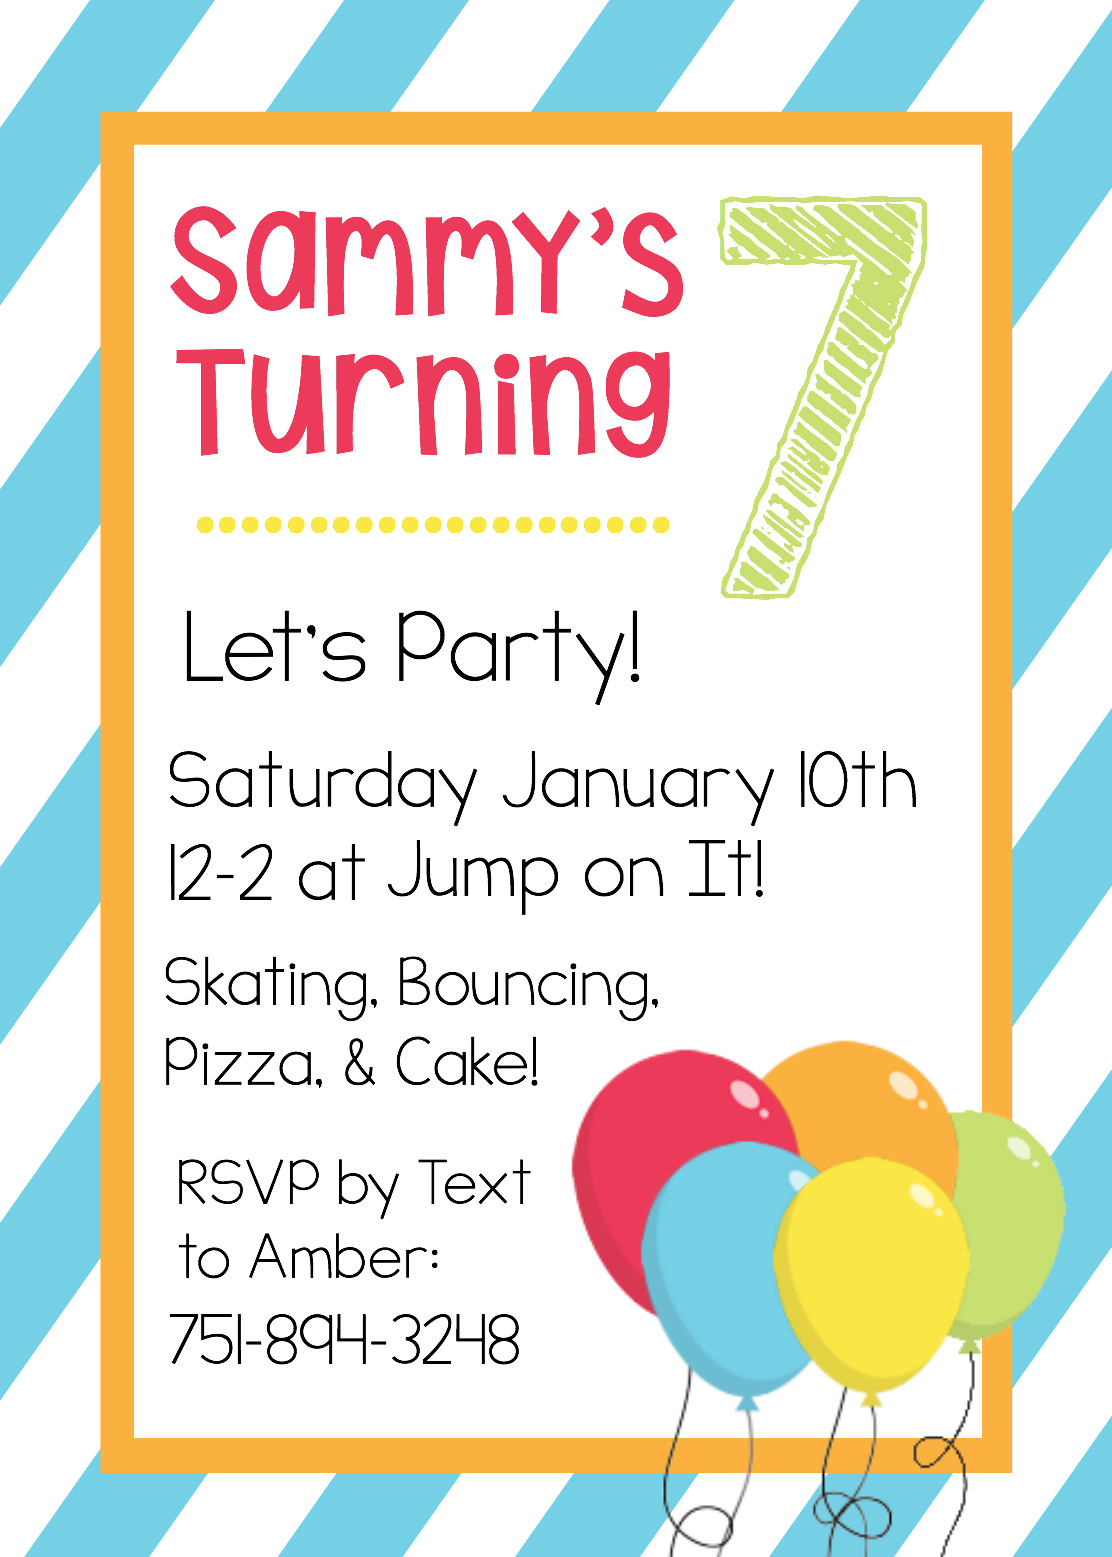 Free Printable Birthday Invitation Templates - Free Printable Invitations